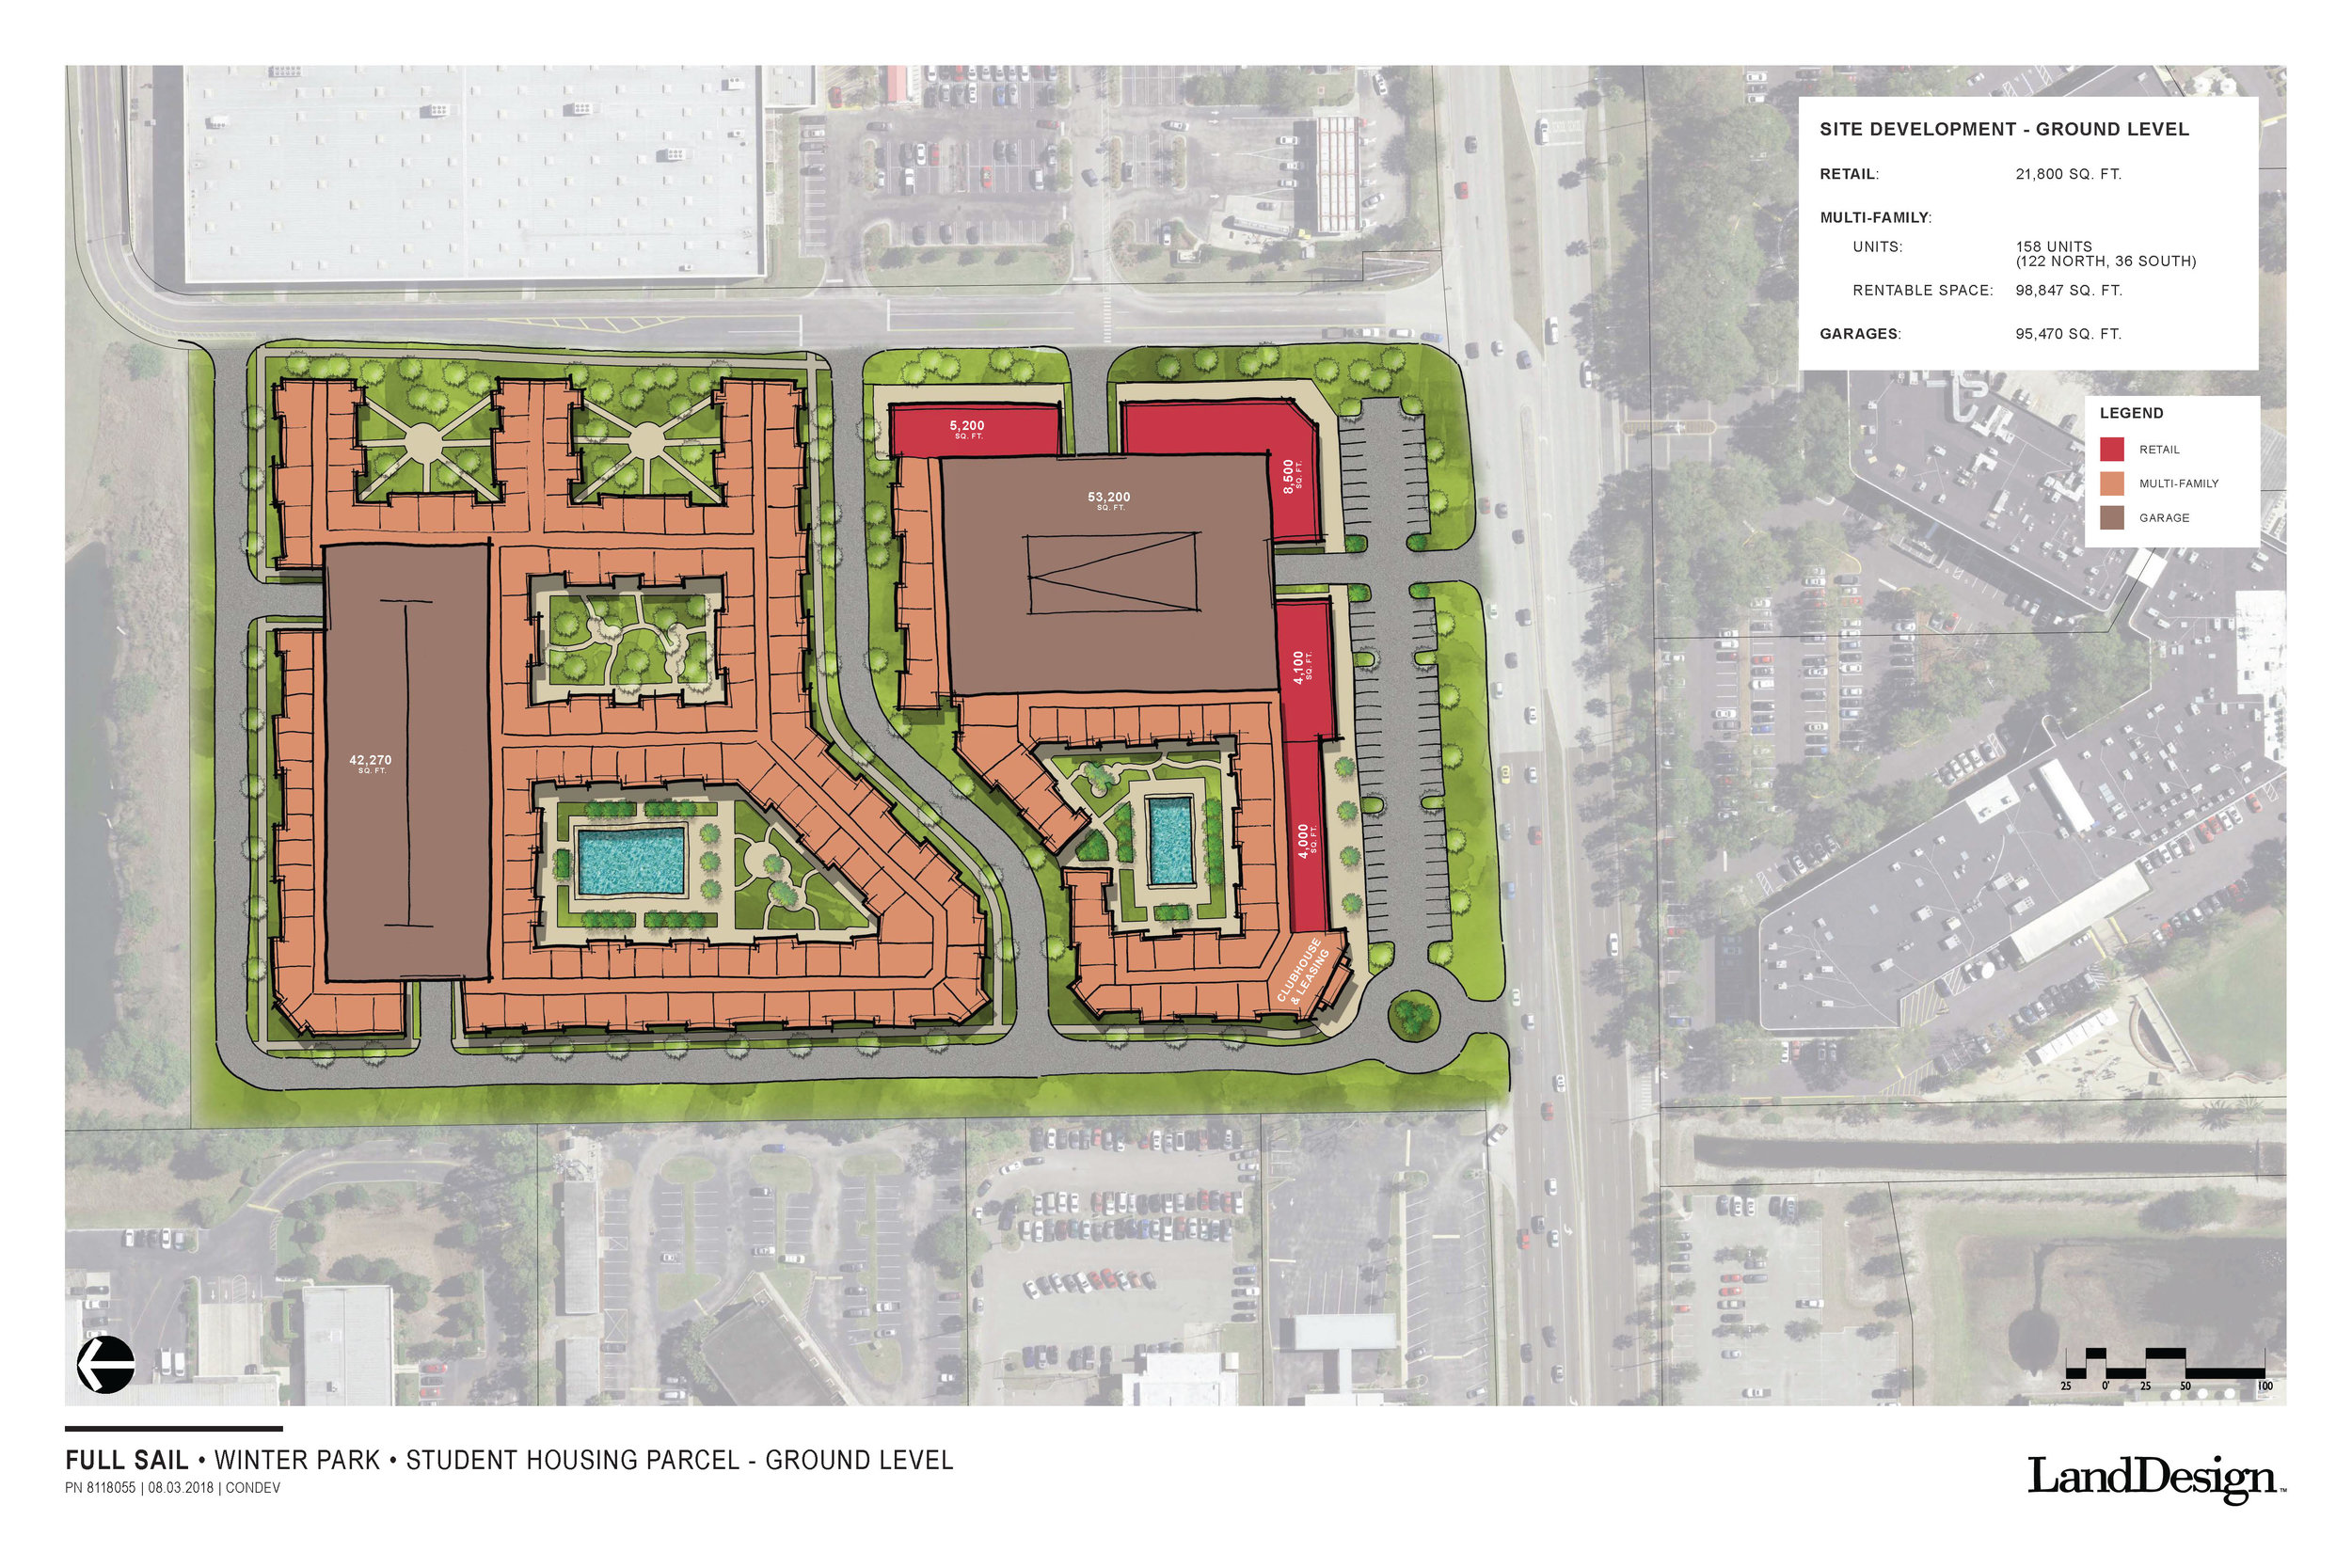 2018.08.03 Full Sail Student Housing Parcel (002)_Page_1.jpg